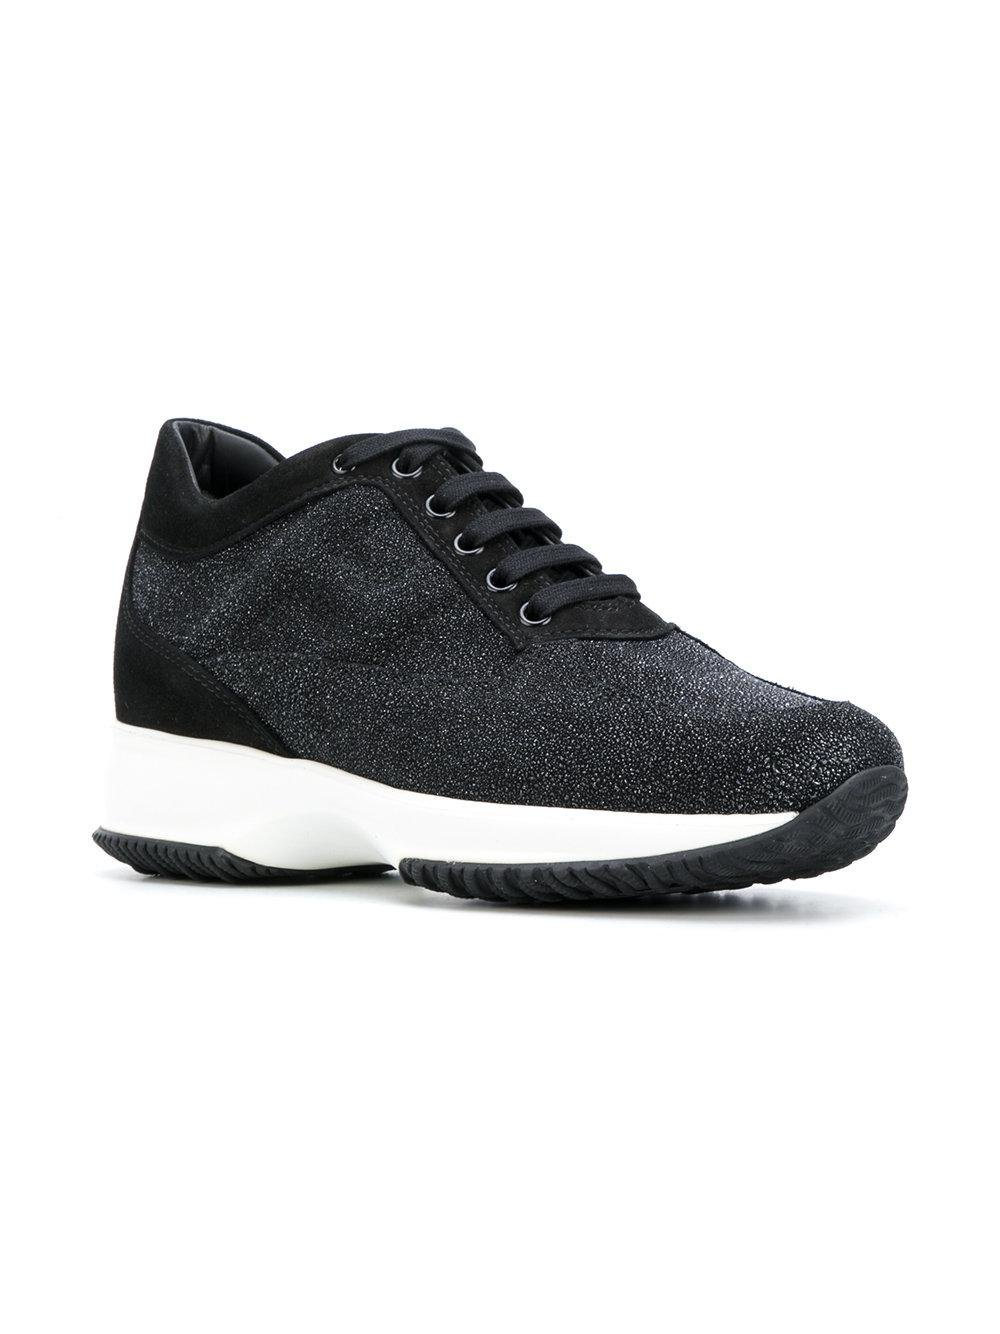 Hogan glittery platform sneakers outlet best 2014 new cheap price outlet visit new aPaVUfmGS